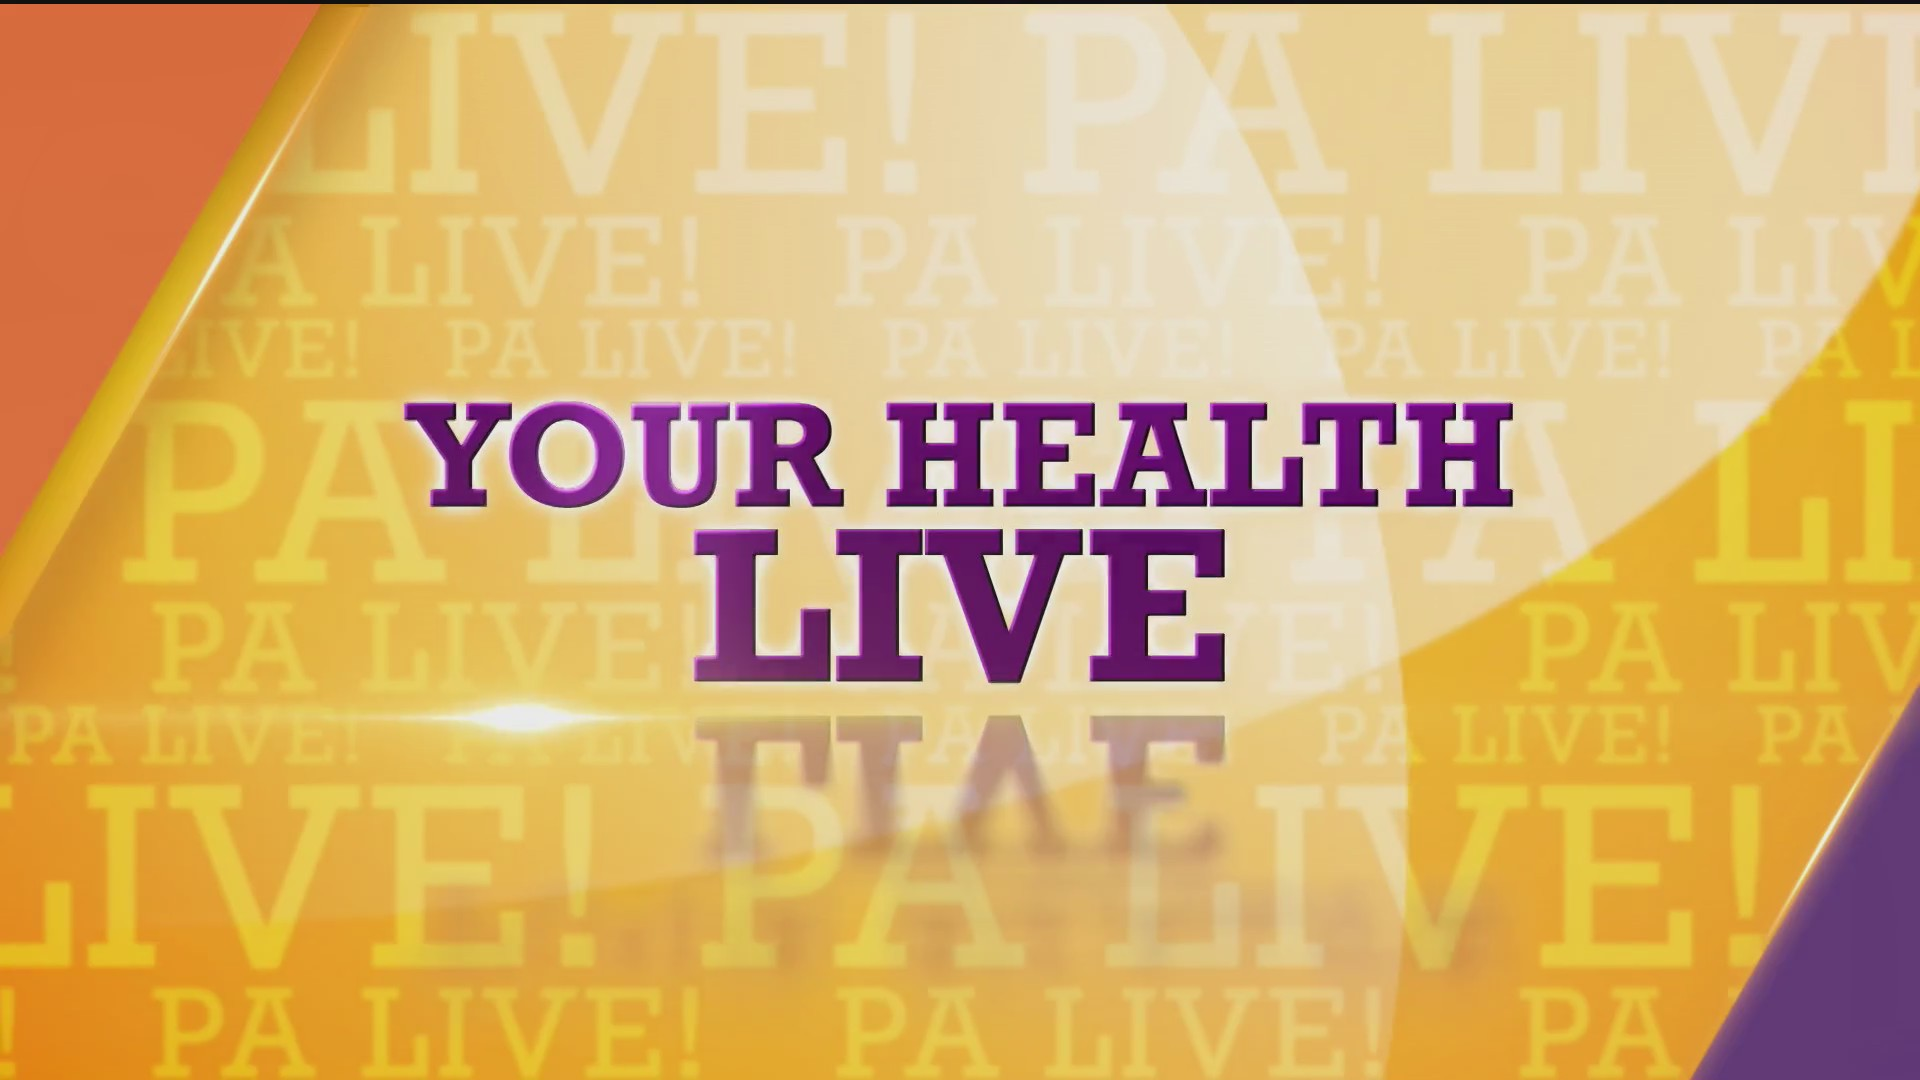 PAlive! Your Health Live (Critical Care Medicine) September 2, 2020